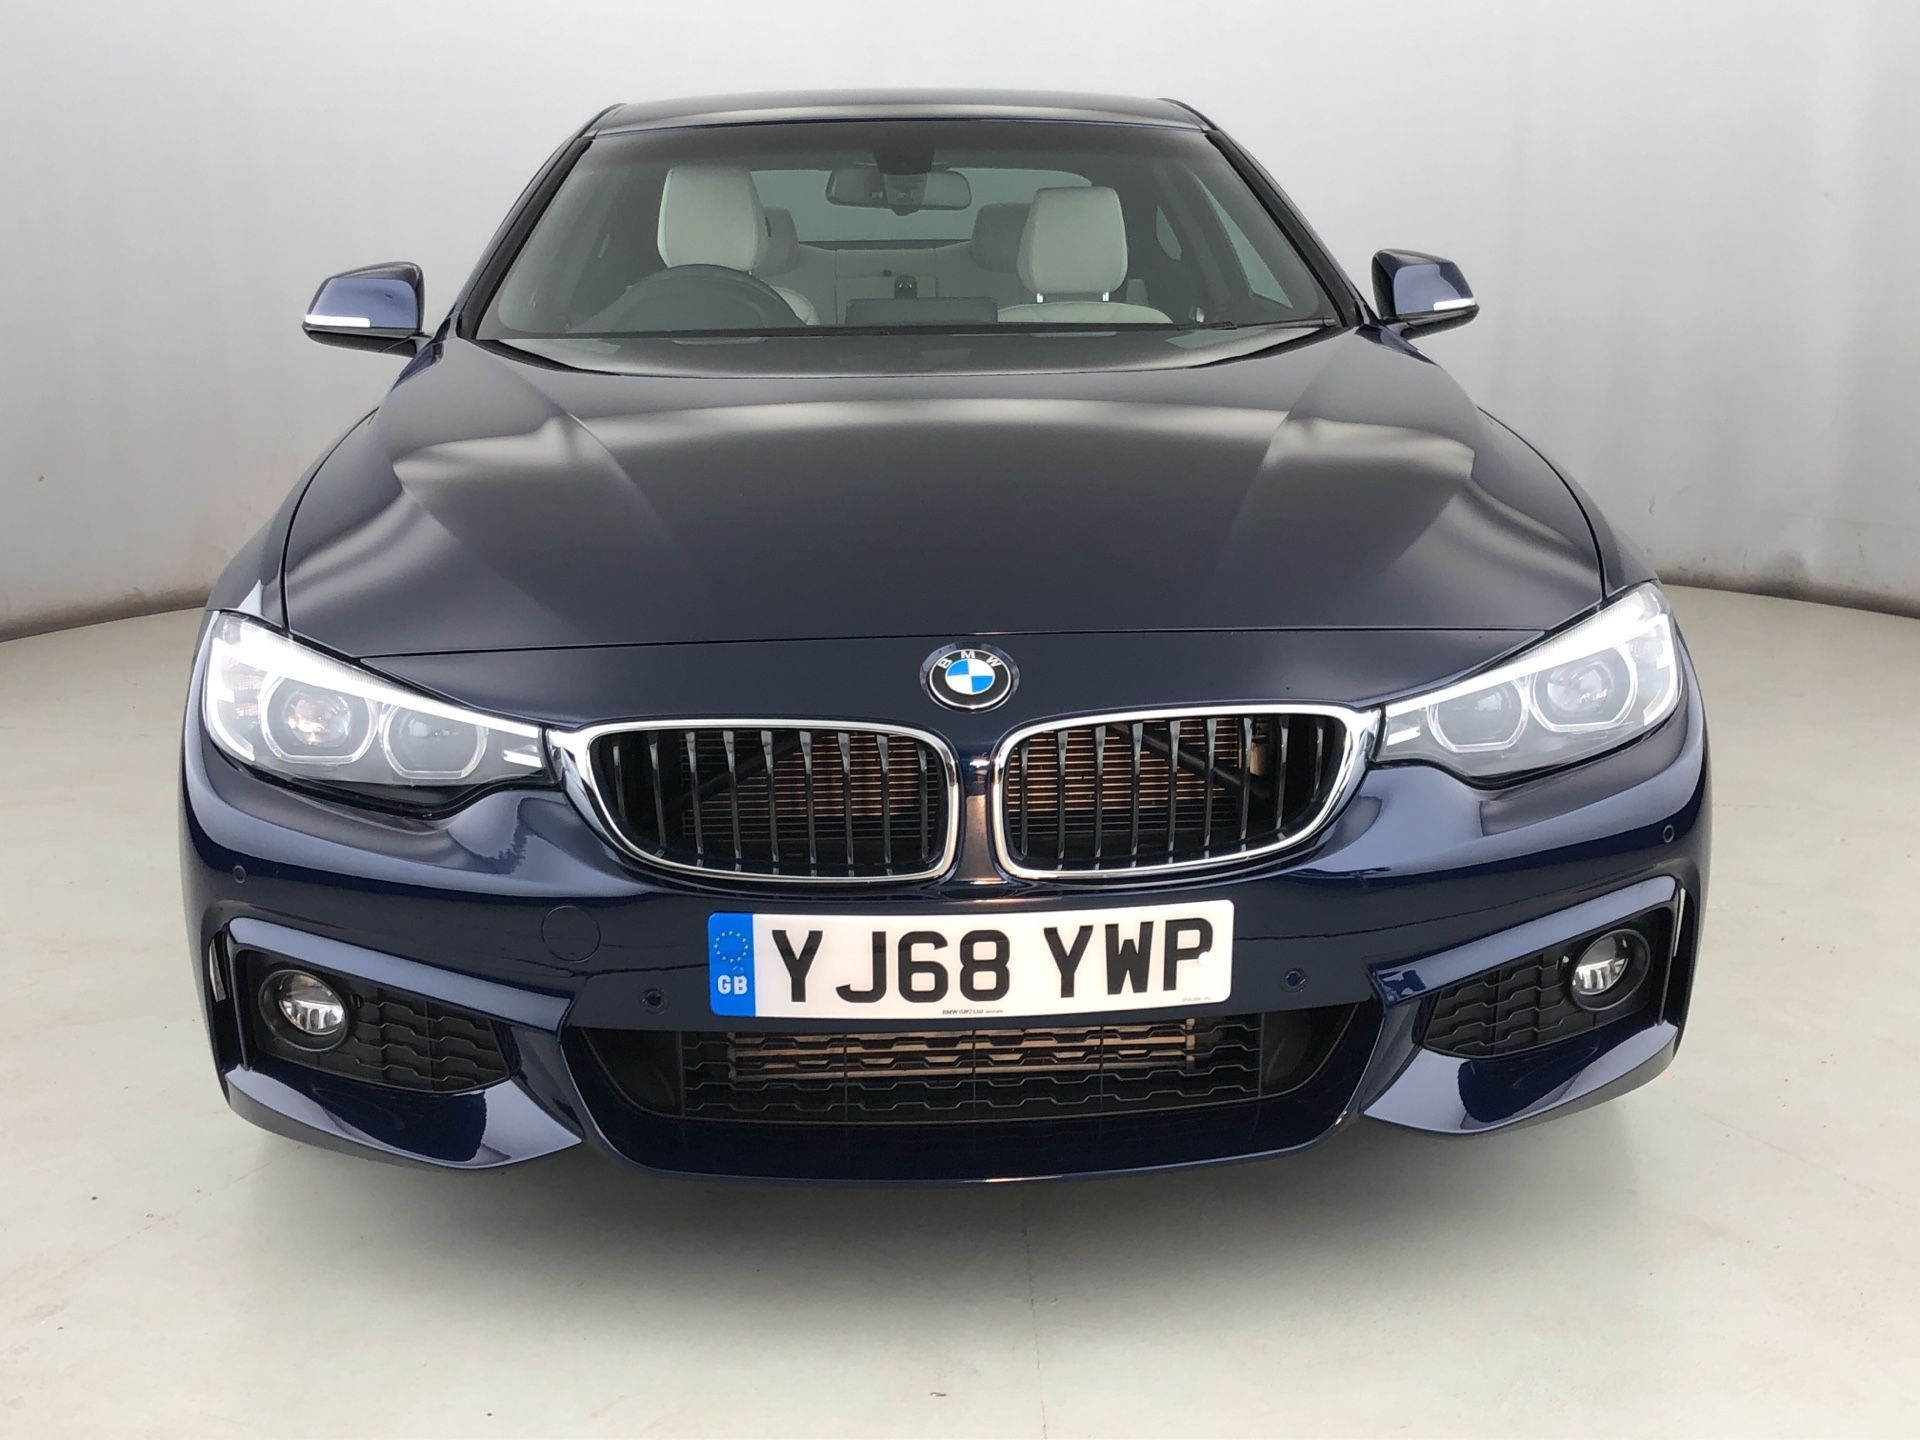 Image 15 - BMW 420d M Sport Coupe (YJ68YWP)